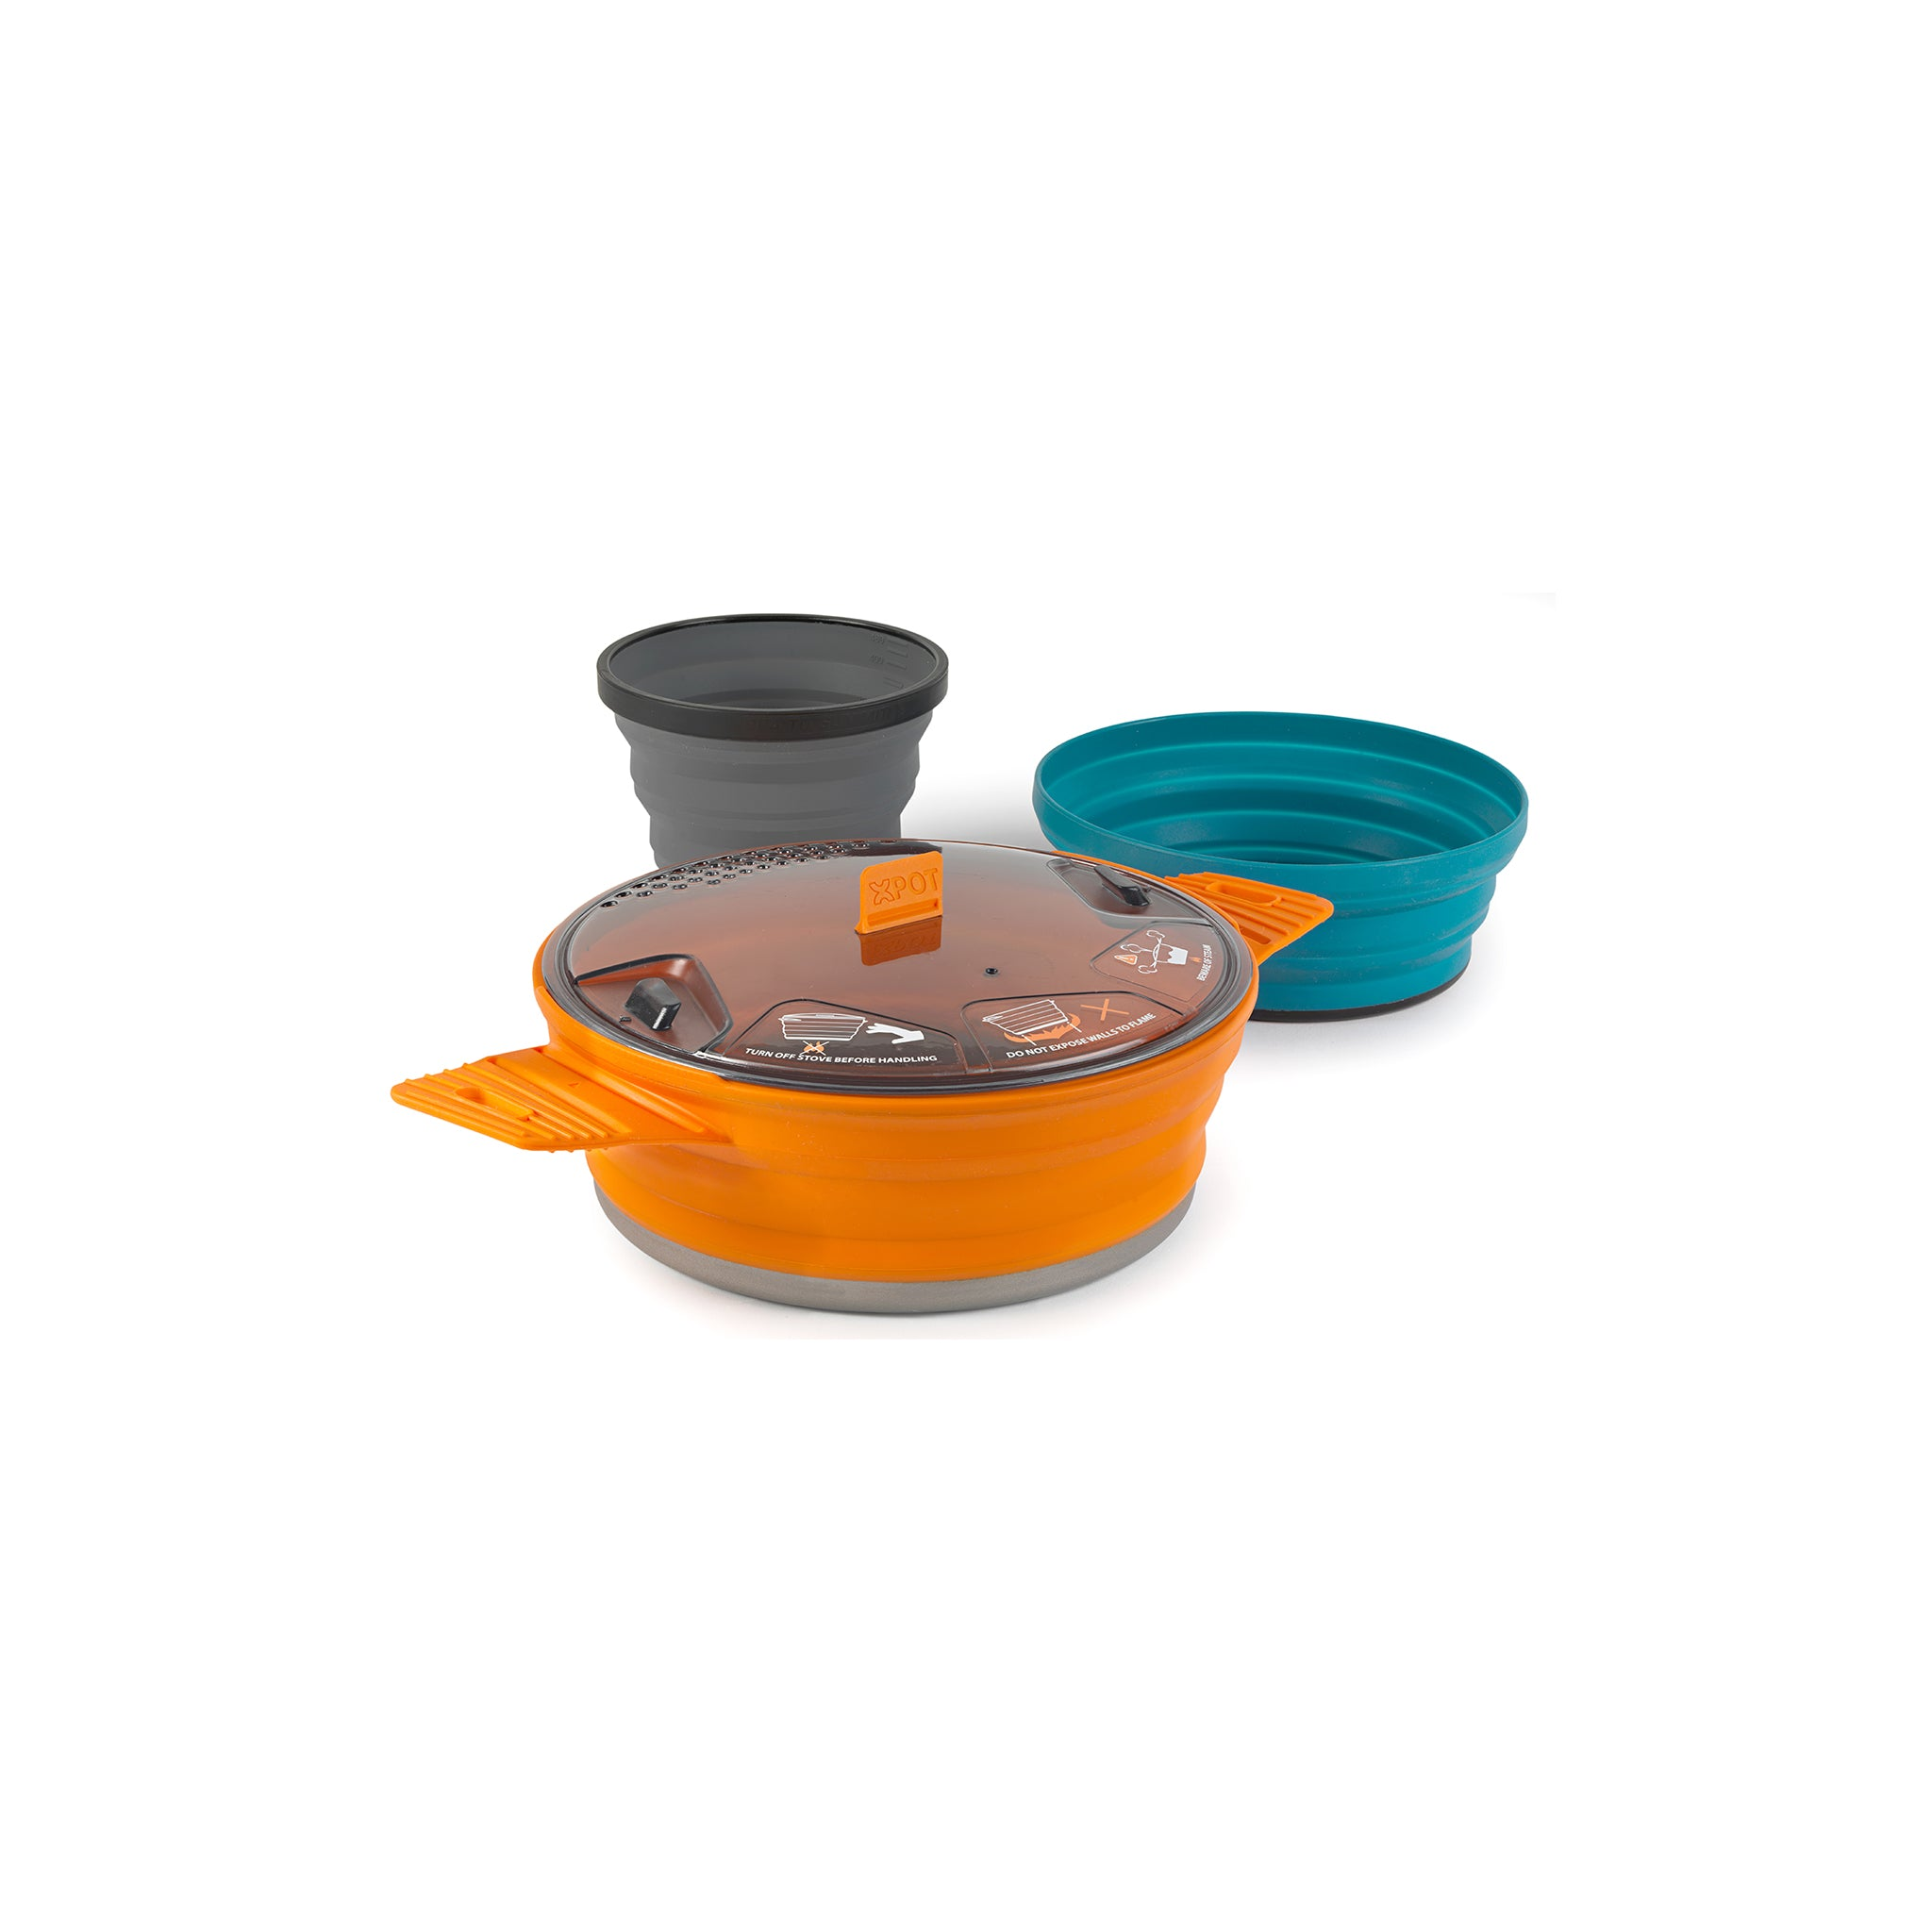 X-Set 21 set _ collapsible backpacking cooking pot _ x pot x cup and x bowl